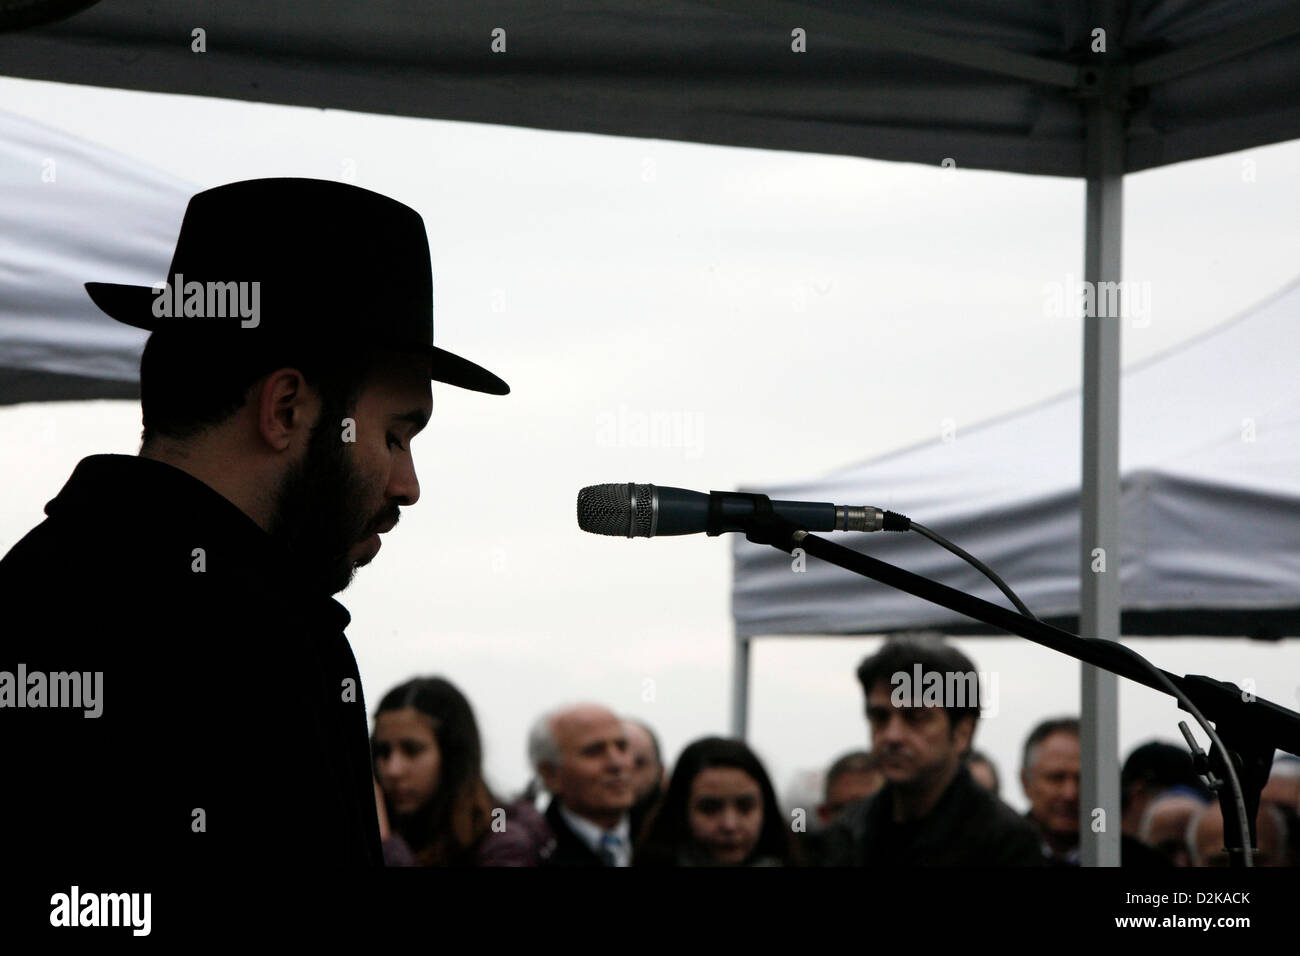 Ceremony in memory of the persecution of the Jewish people during World War II, in Thessaloniki, northern Greece, Stock Photo